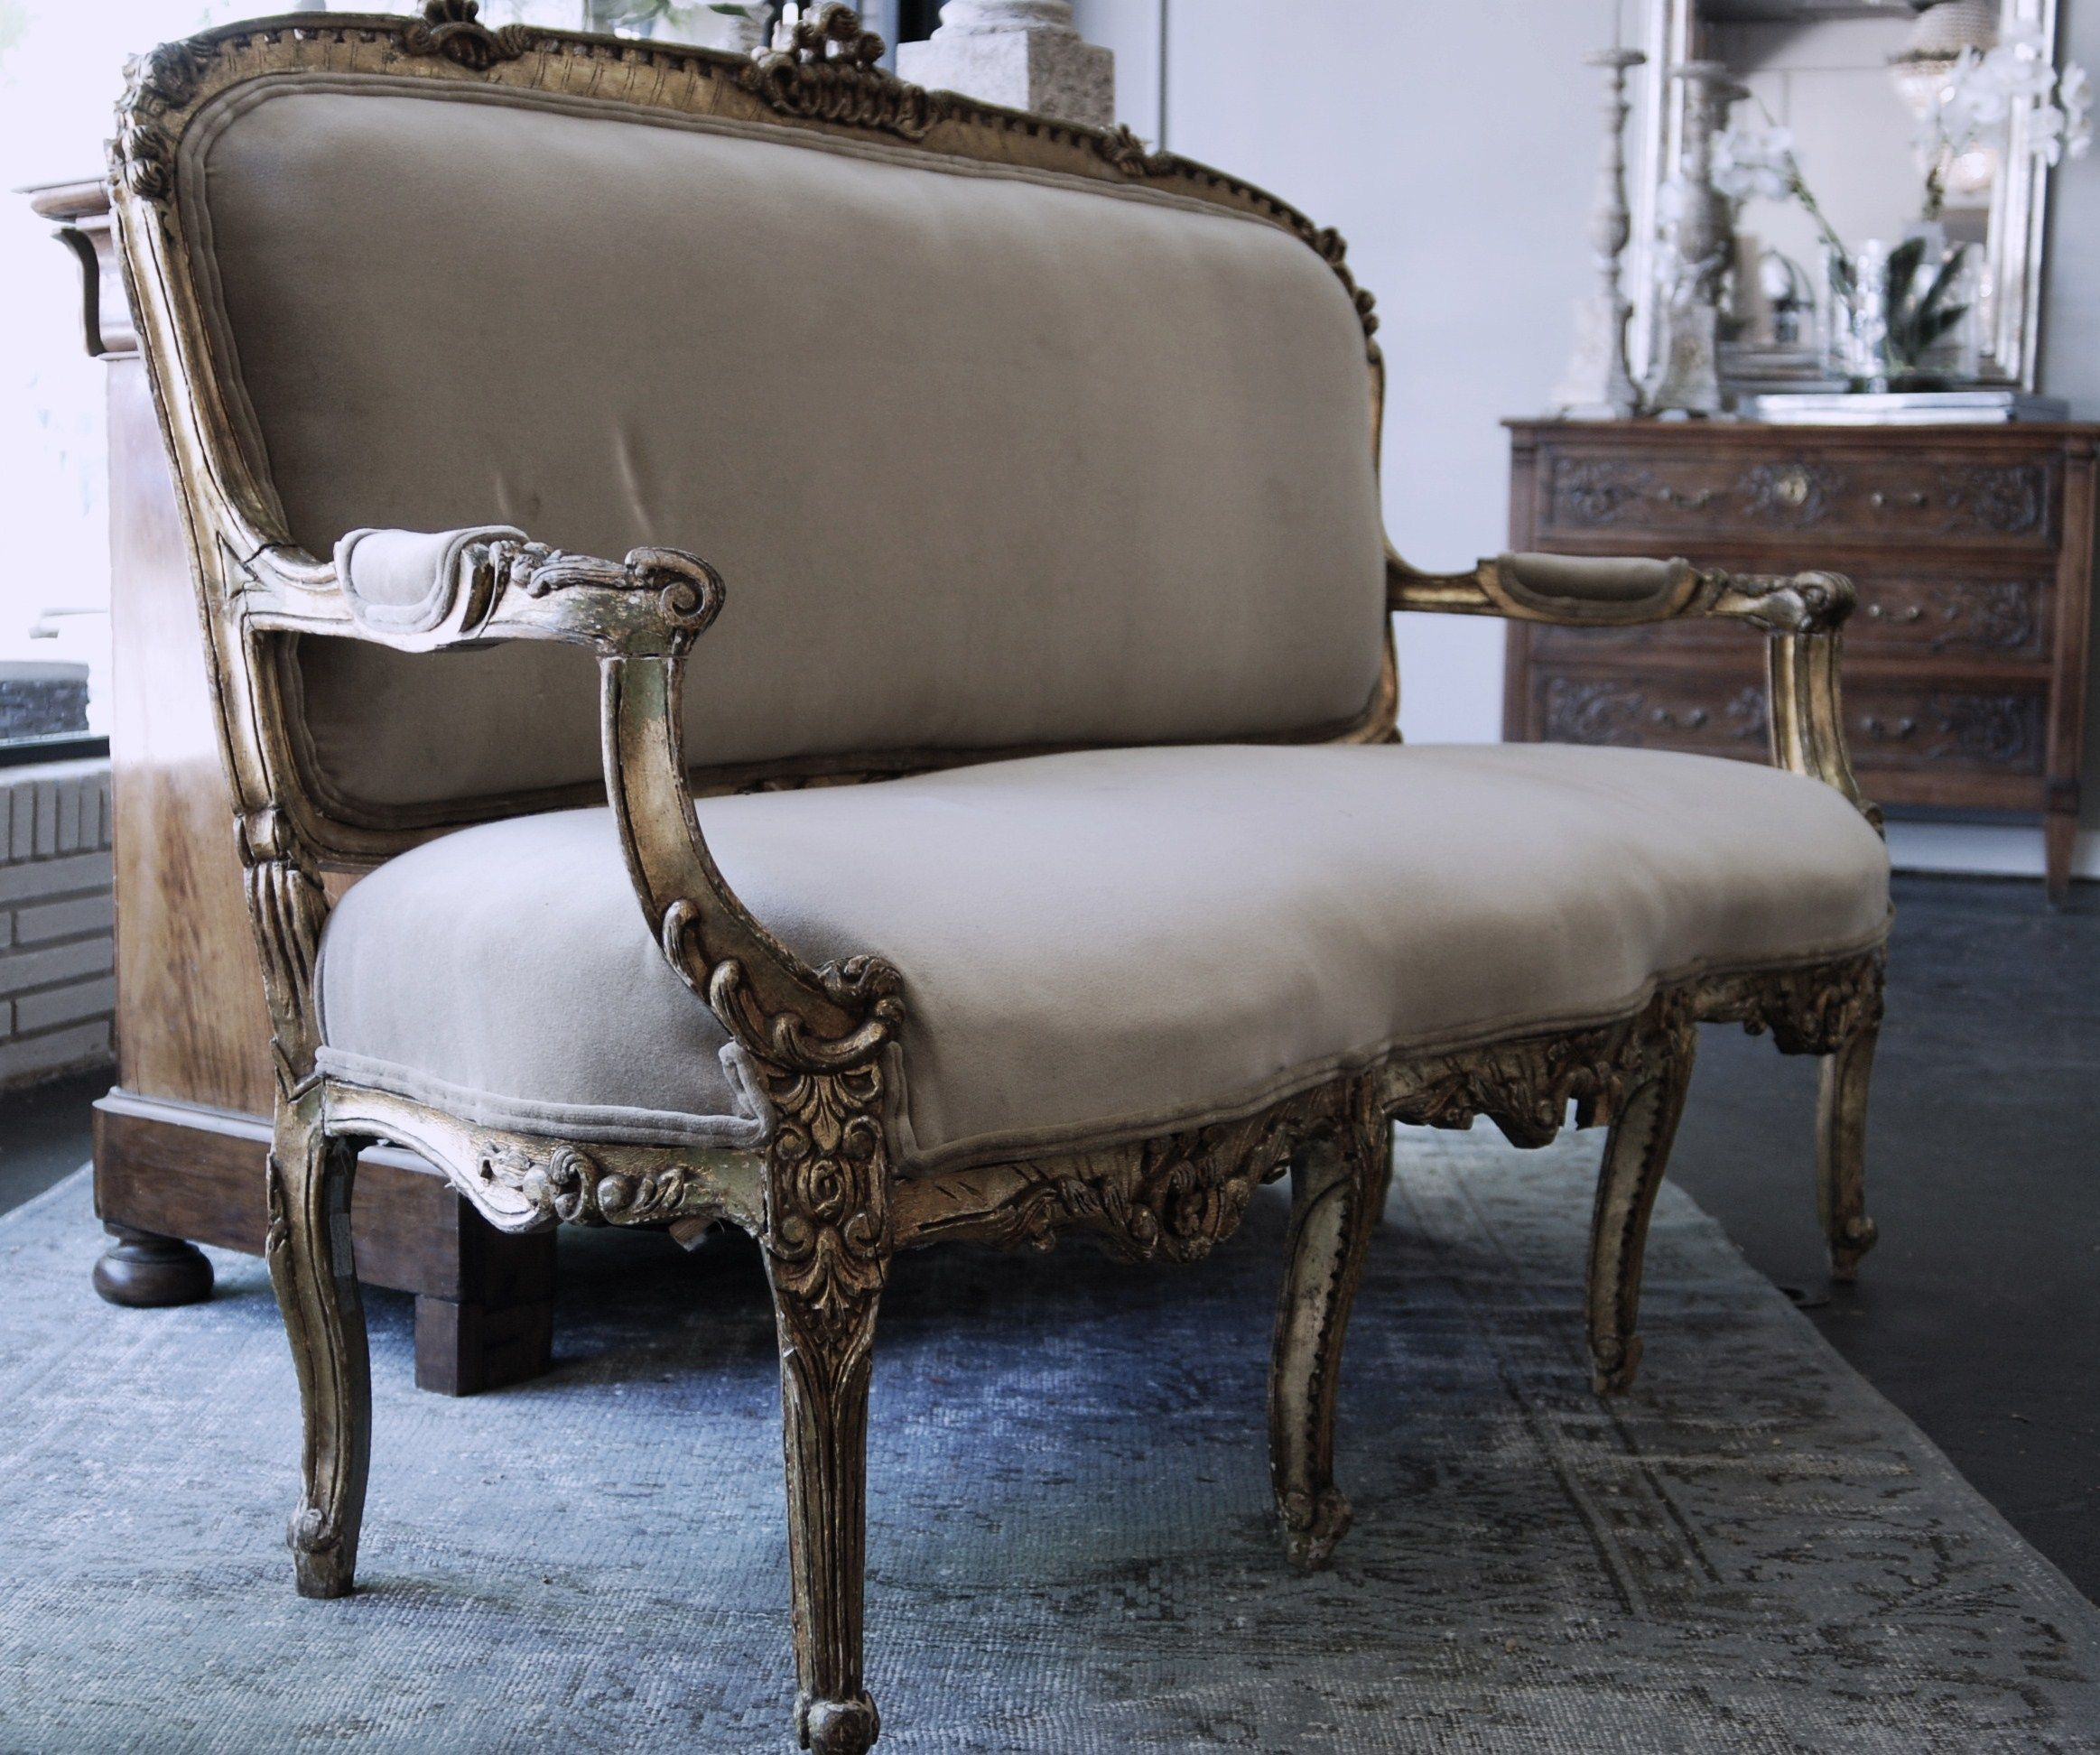 Antique upholstered chair styles - Antique French Gilt Sofa Postcard From Paris Home Photography By Engrid Latina